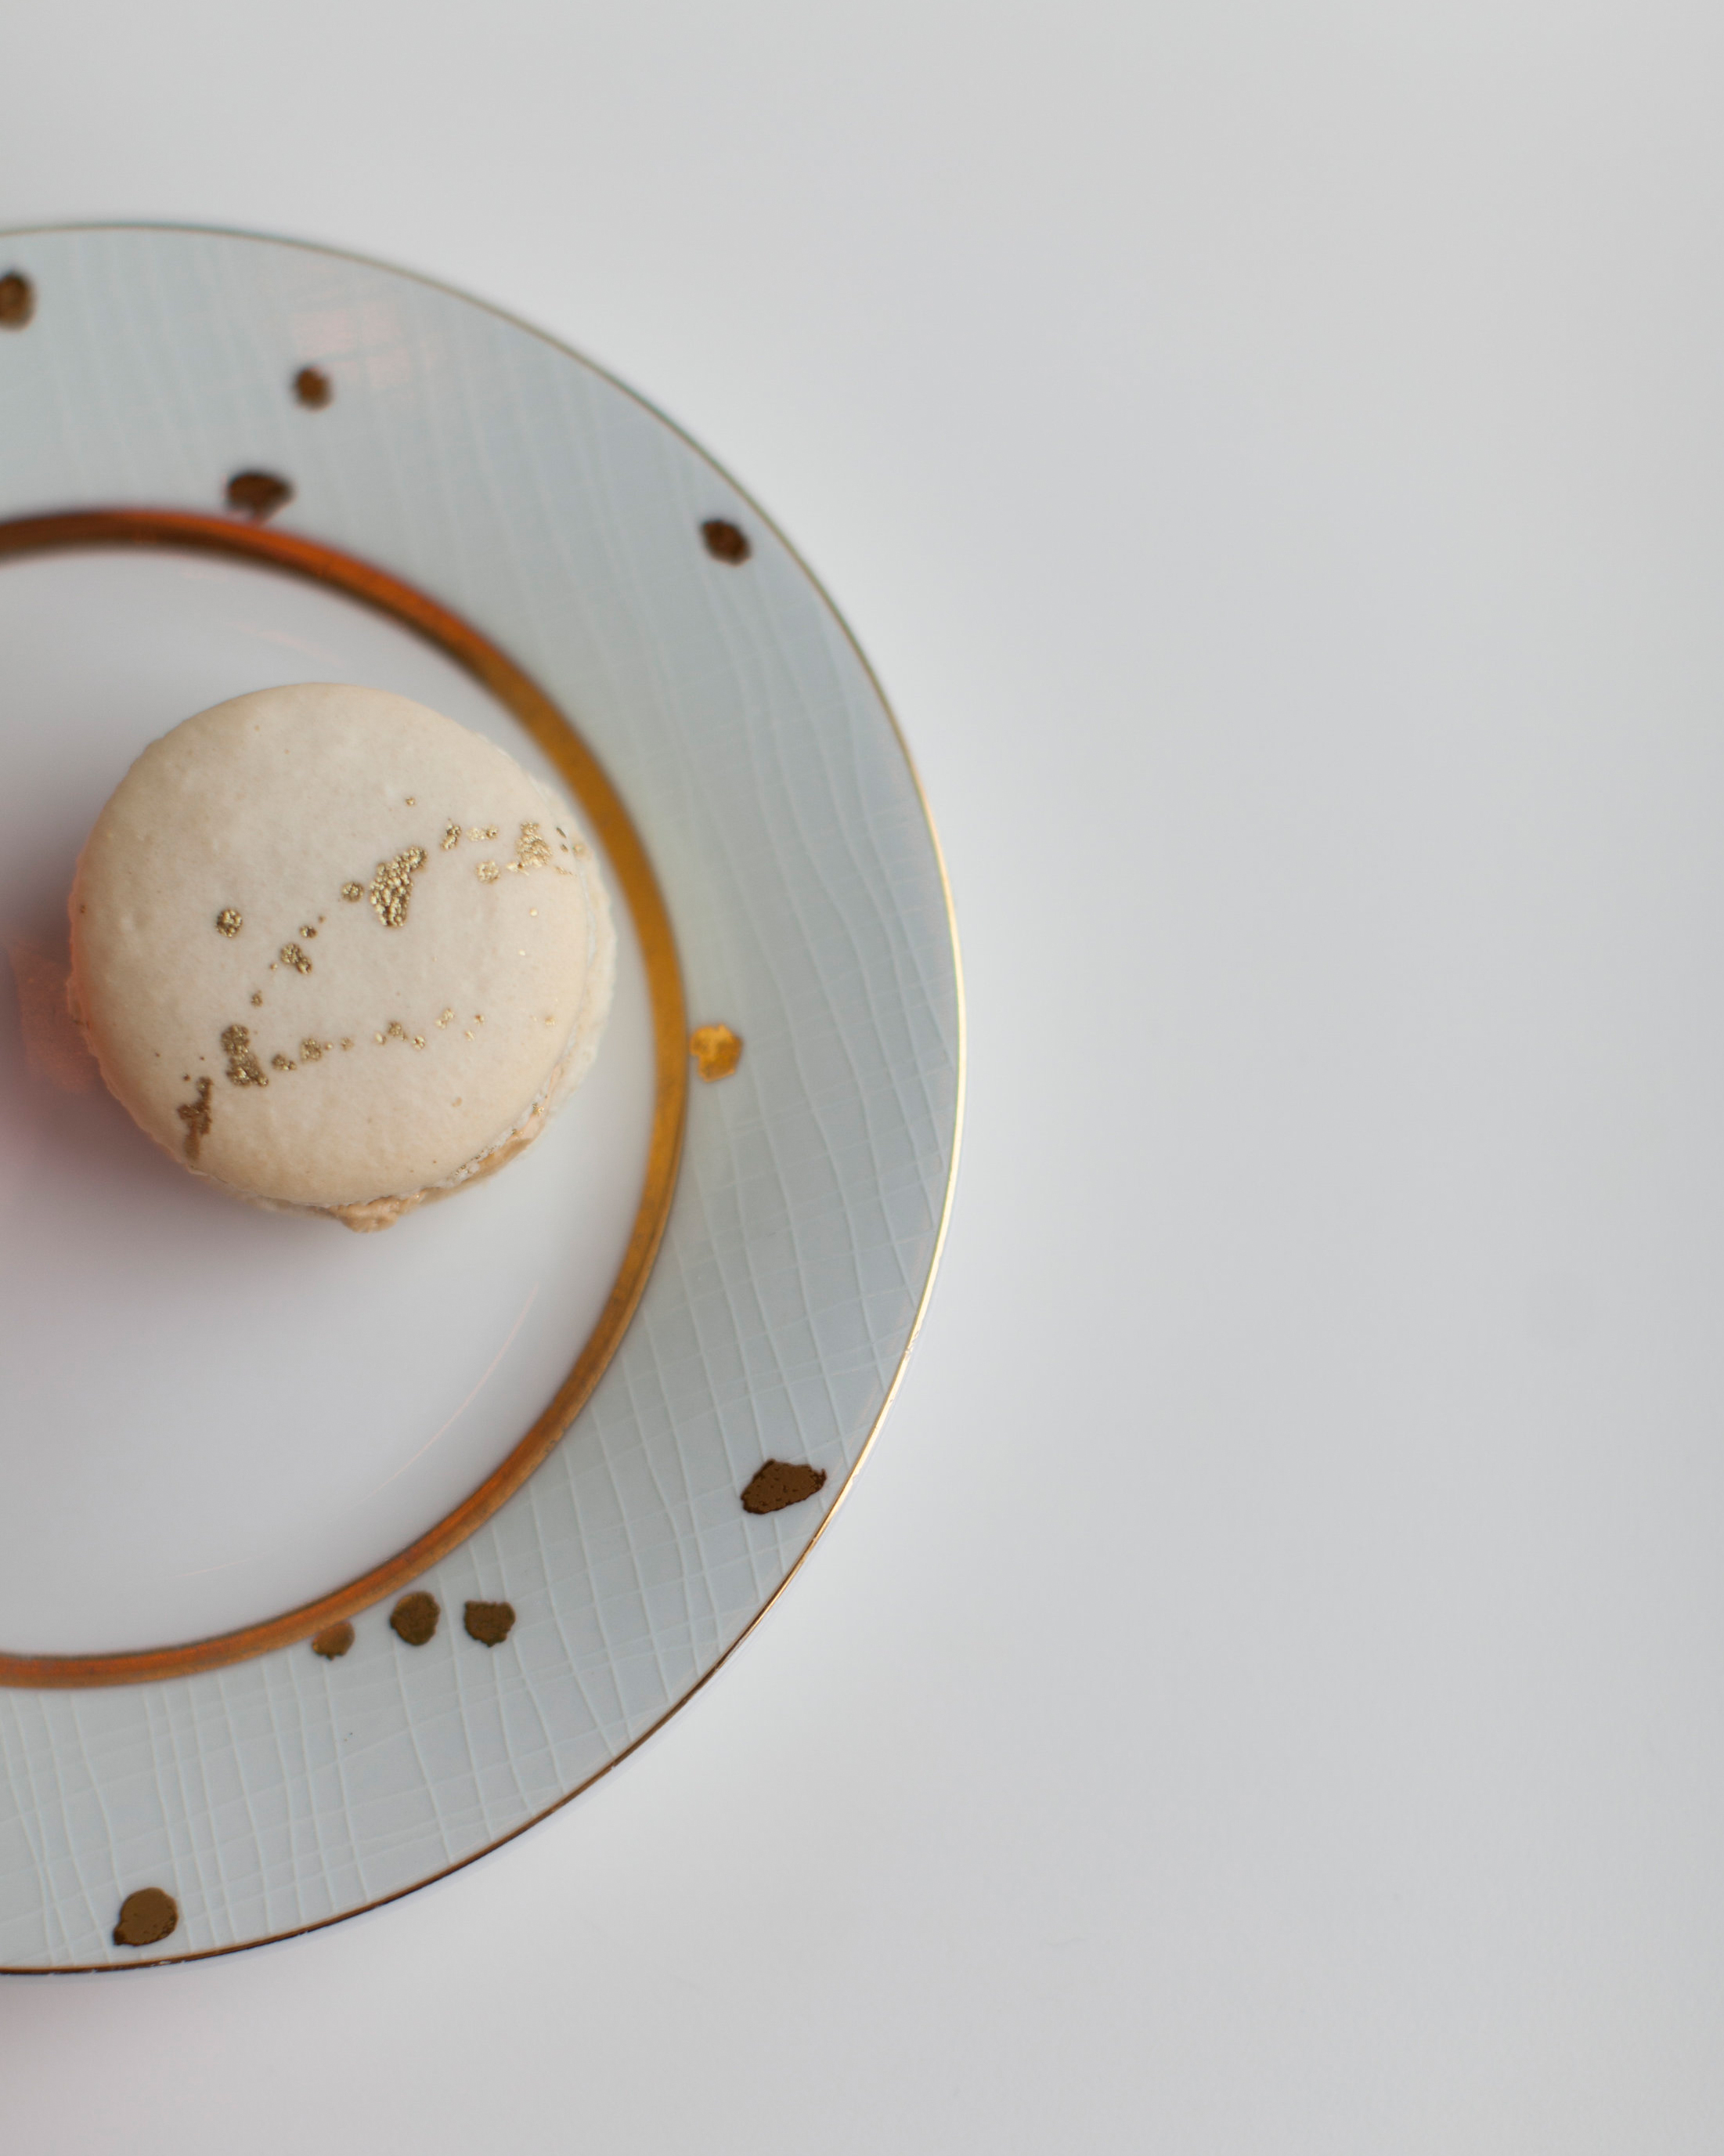 ashley-ryan-wedding-macaron-6544-s111852-0415.jpg